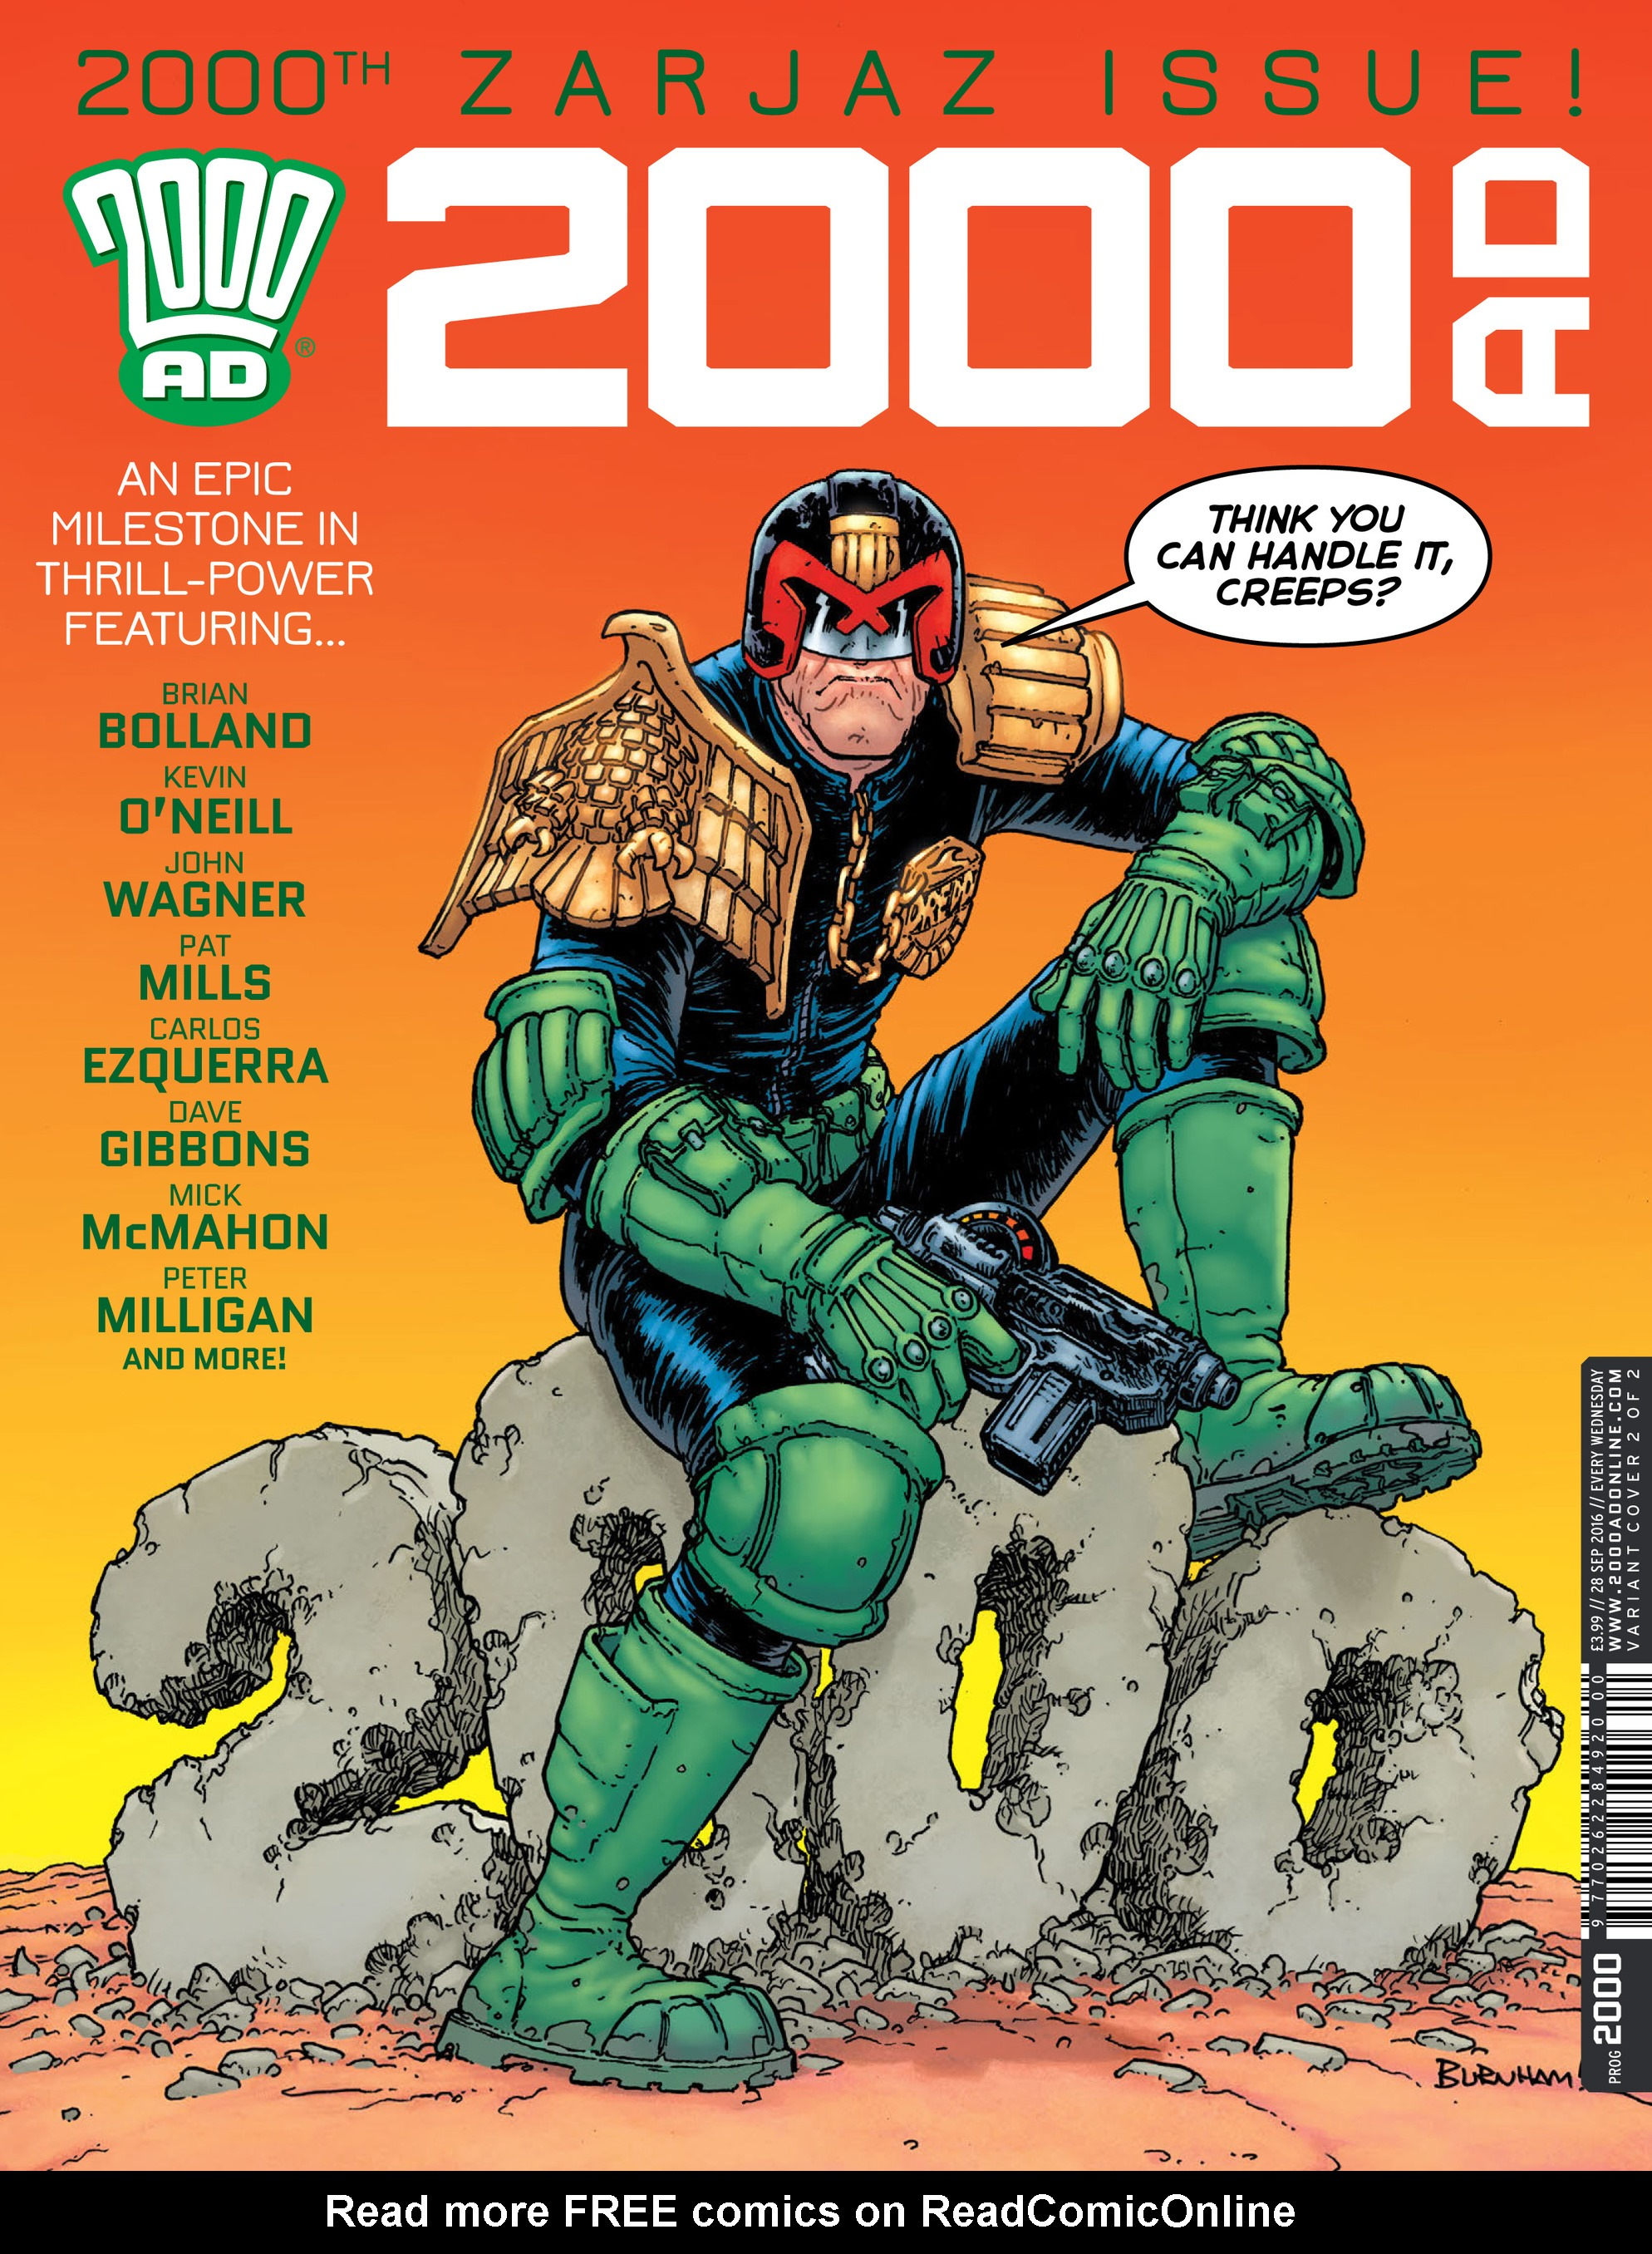 Read online 2000 AD comic -  Issue #2000 - 2